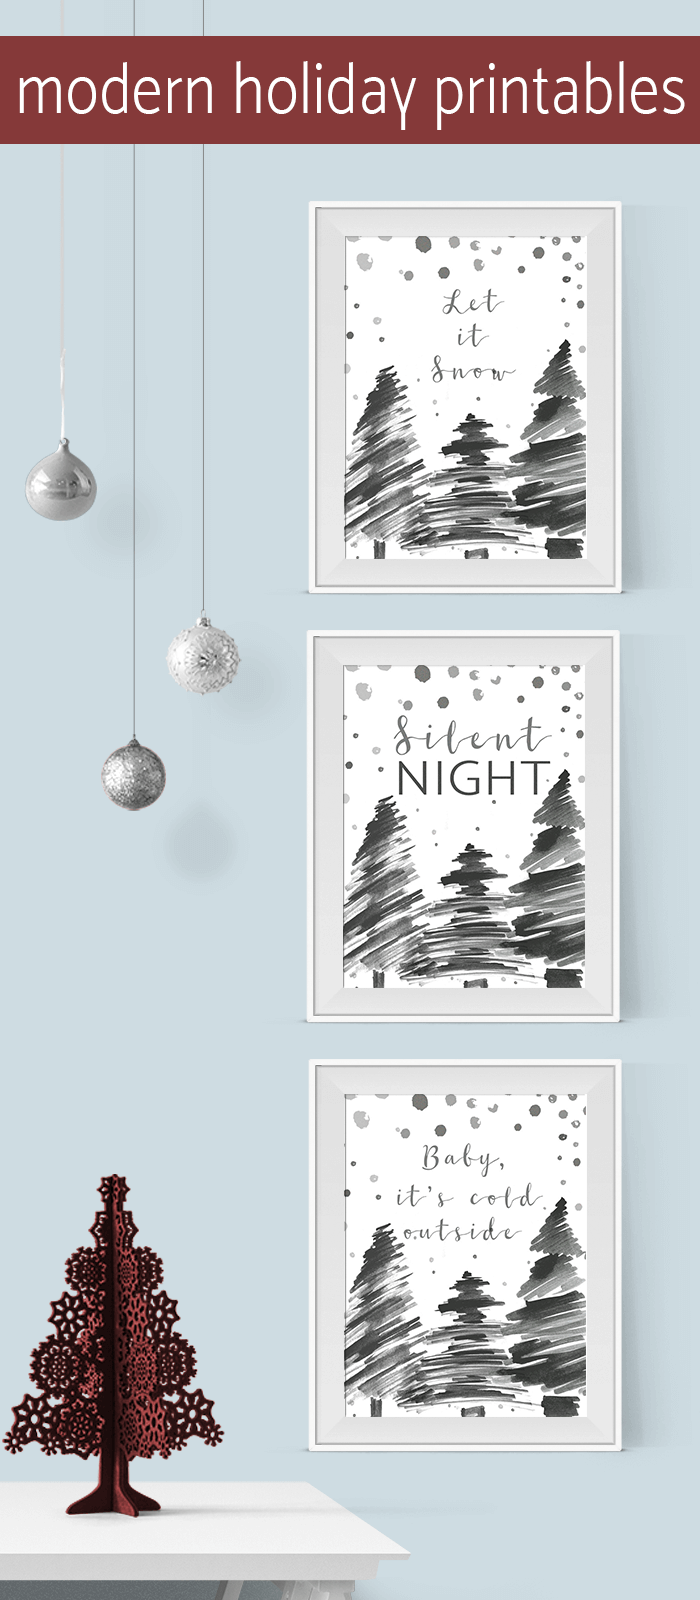 Modern Printables For Decor Gifts Cards And More Winter Holiday Crafts Christmas Projects Diy Christmas Printables